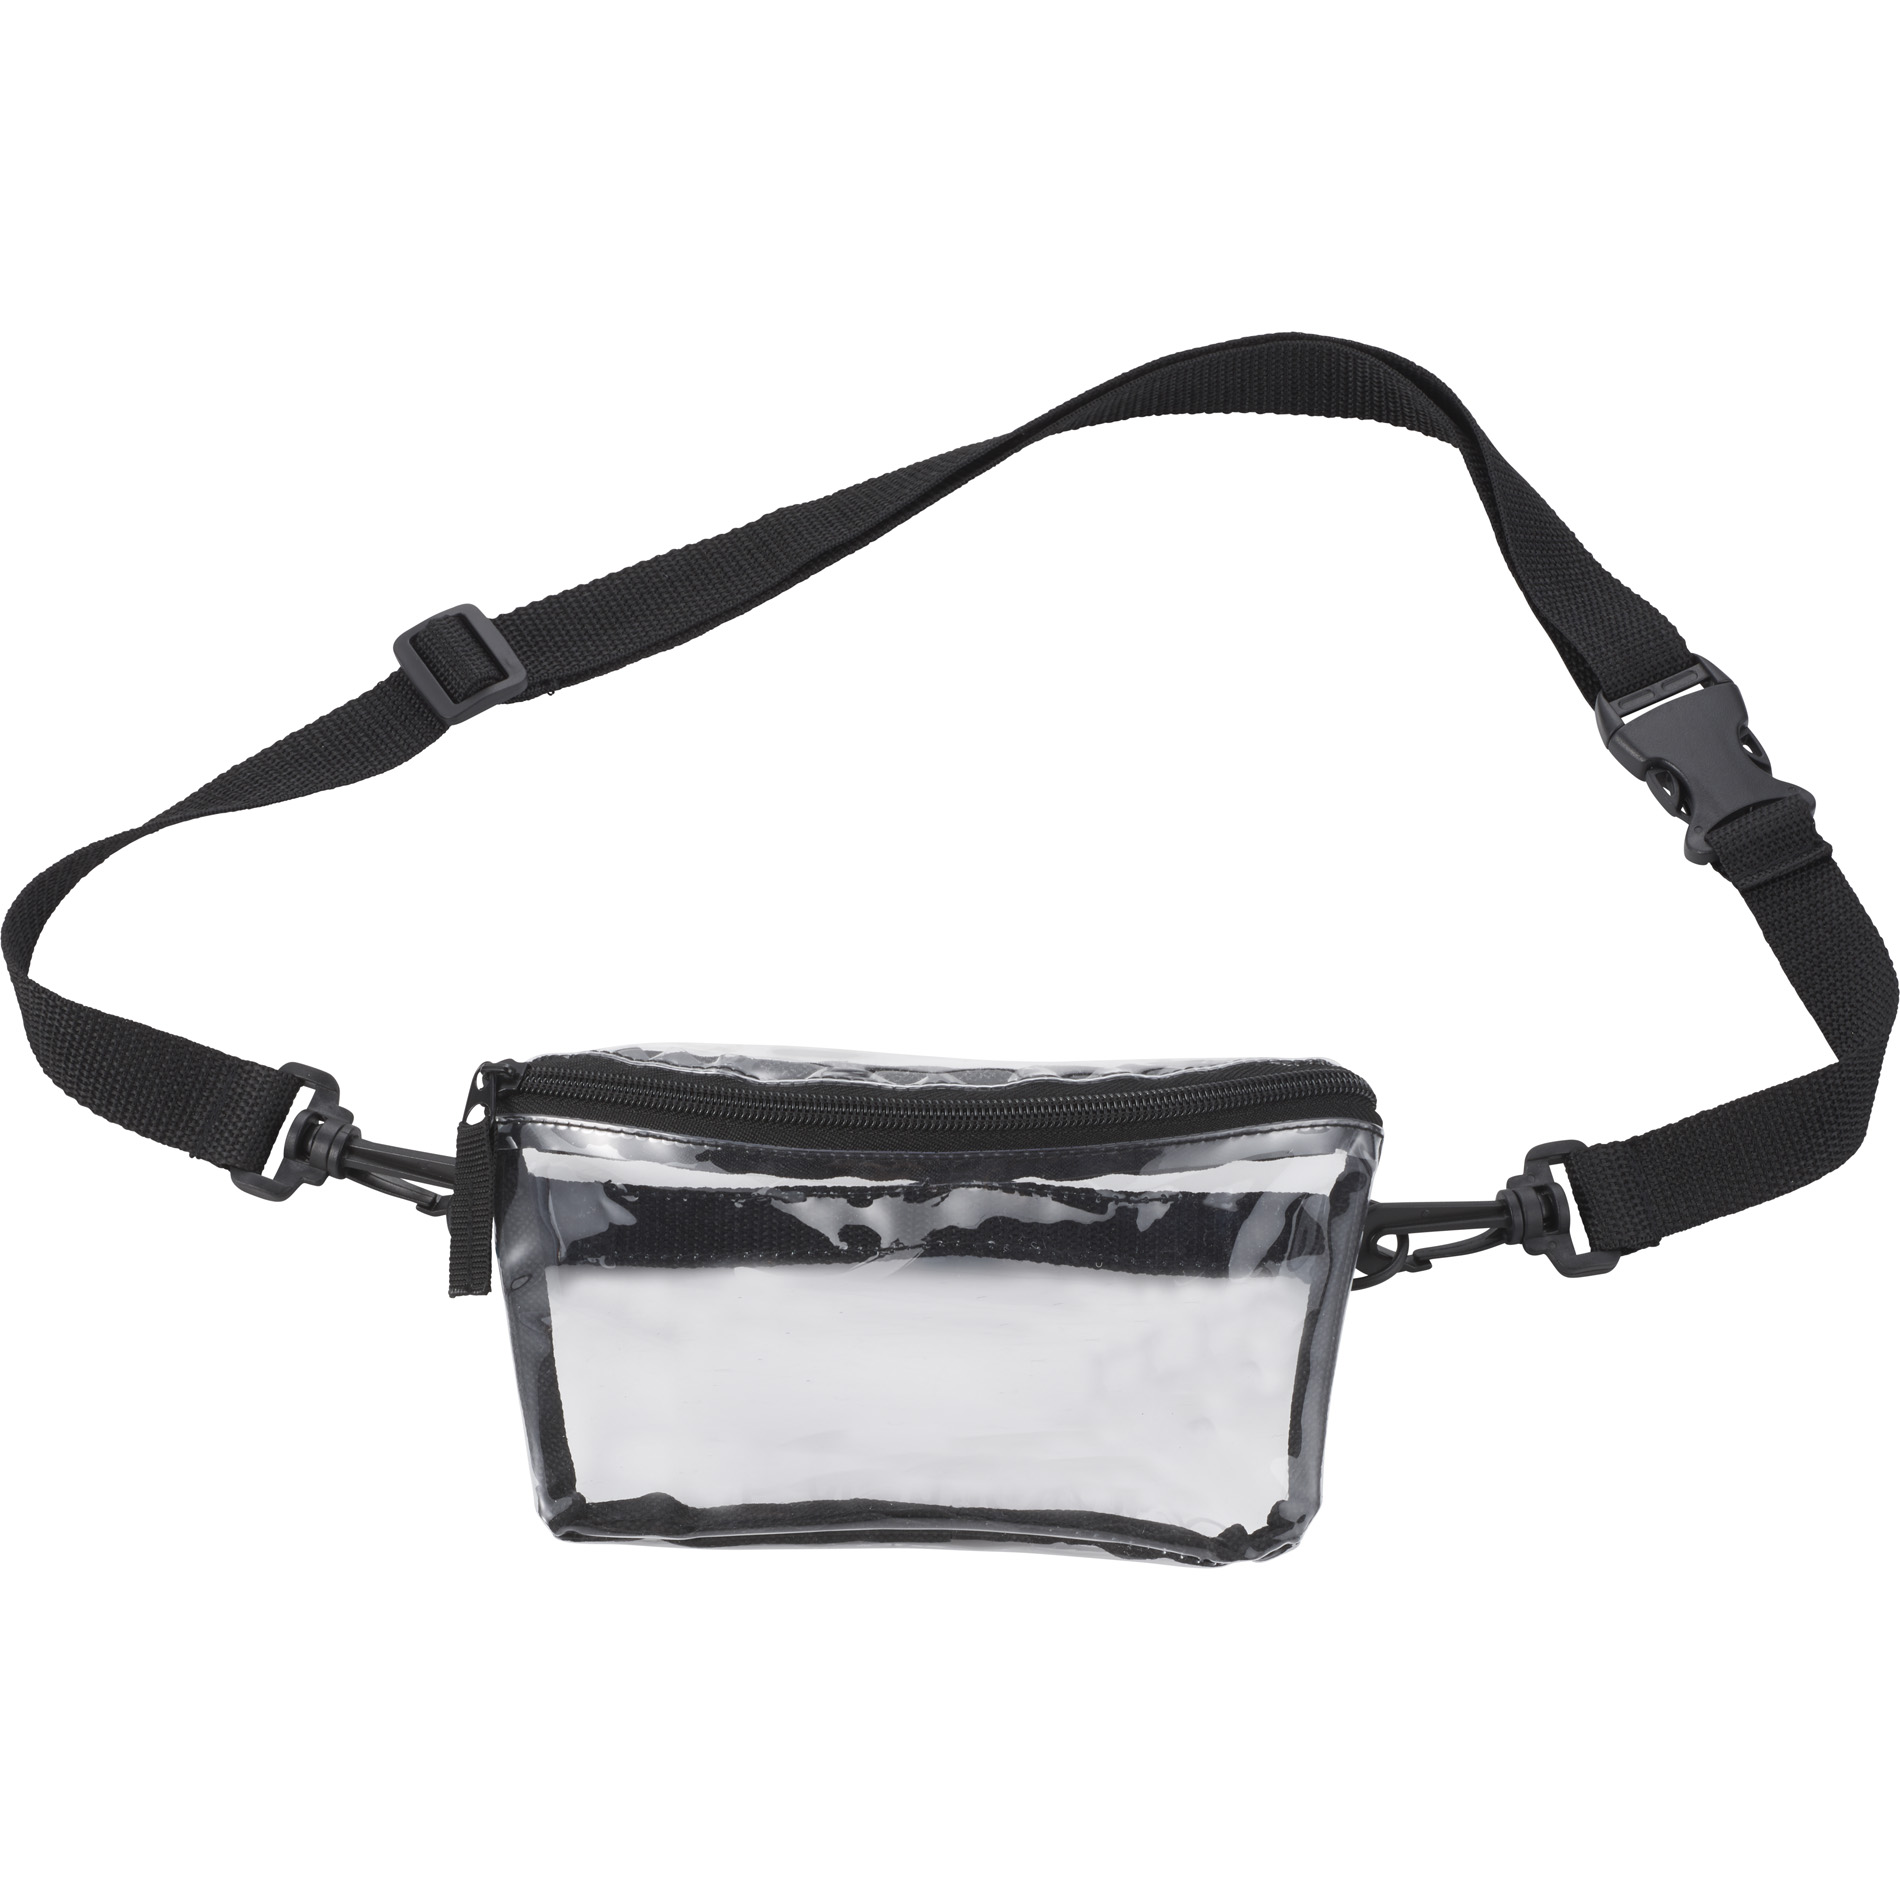 LEEDS 1026-11 - Clear Tinted Convertible Waist Pack